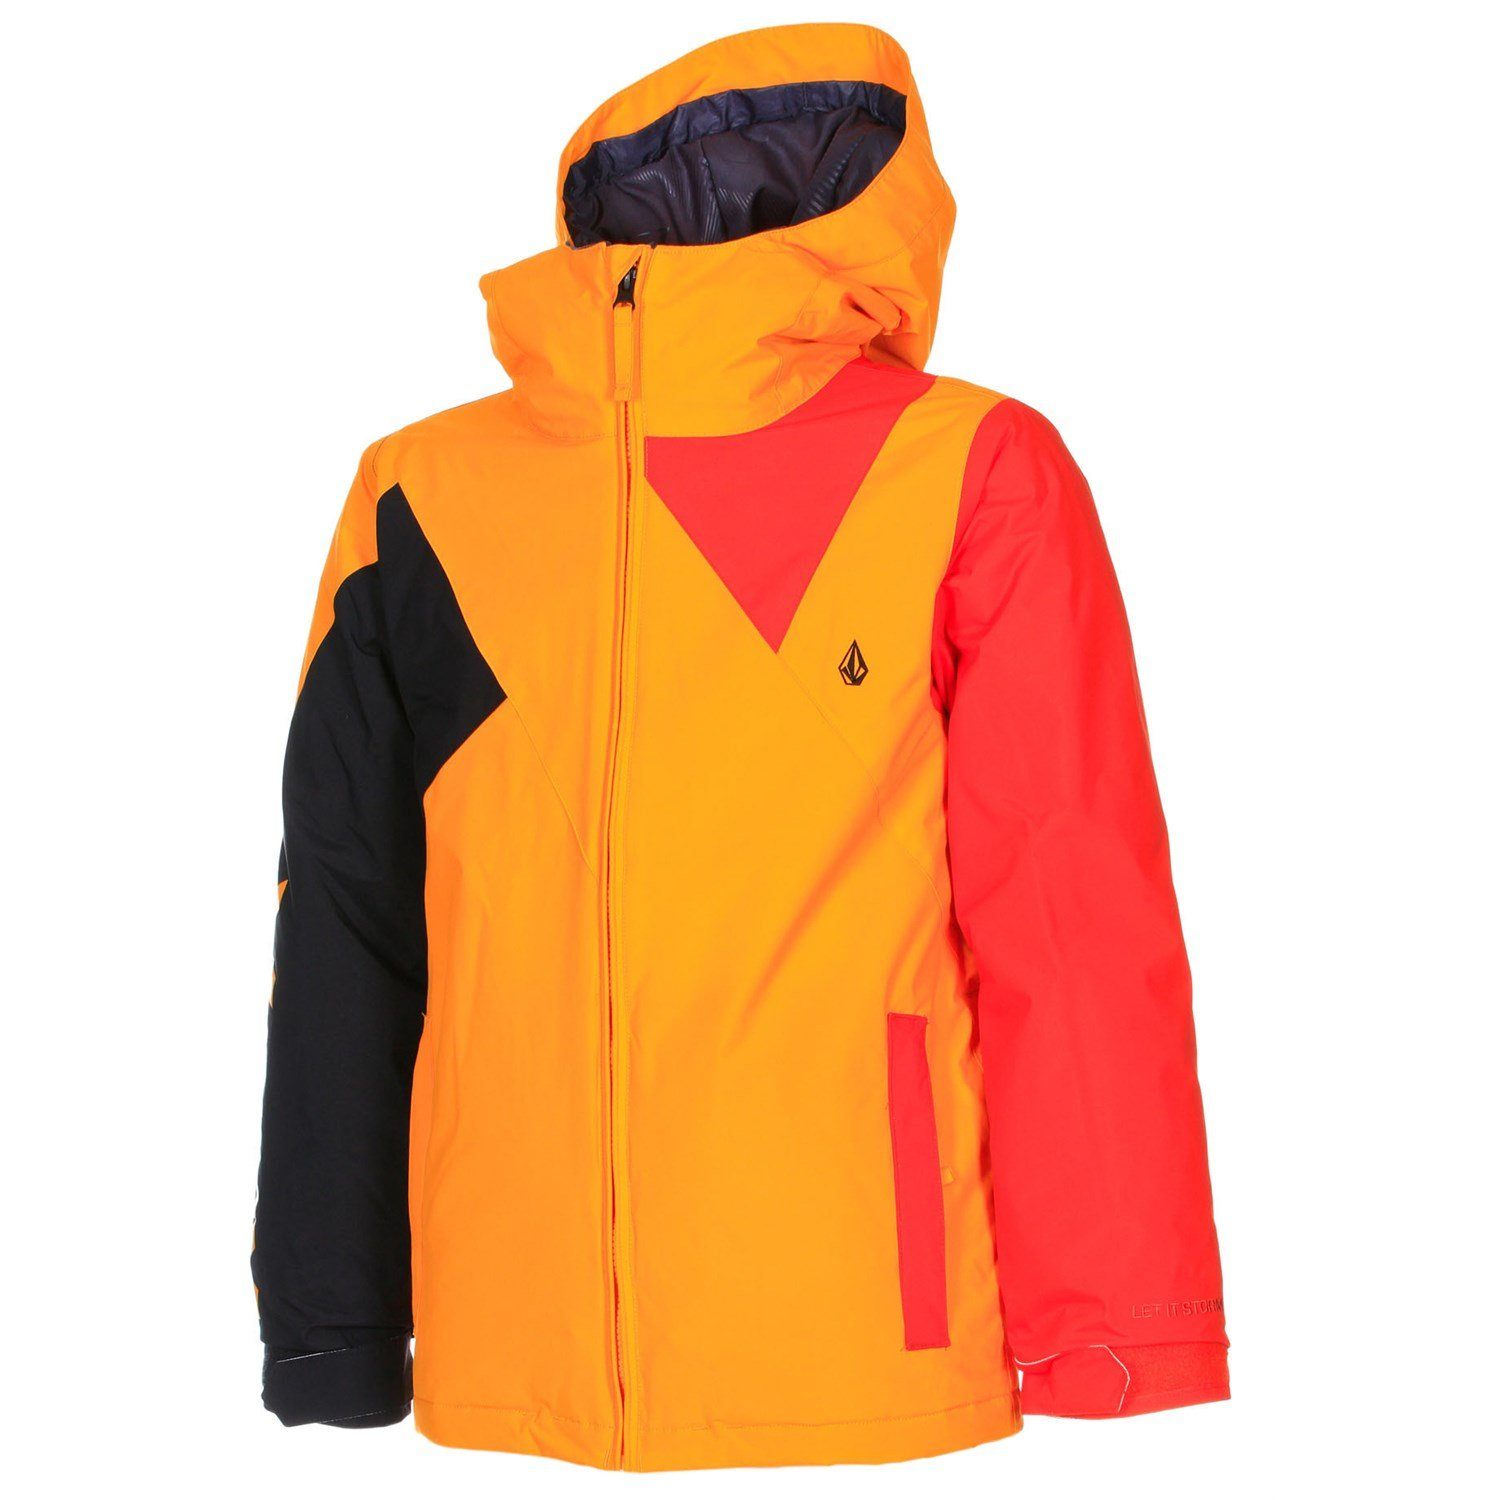 Volcom Boys Impact Insulated Ski and Snowboard Jacket, Orange Burst, Medium